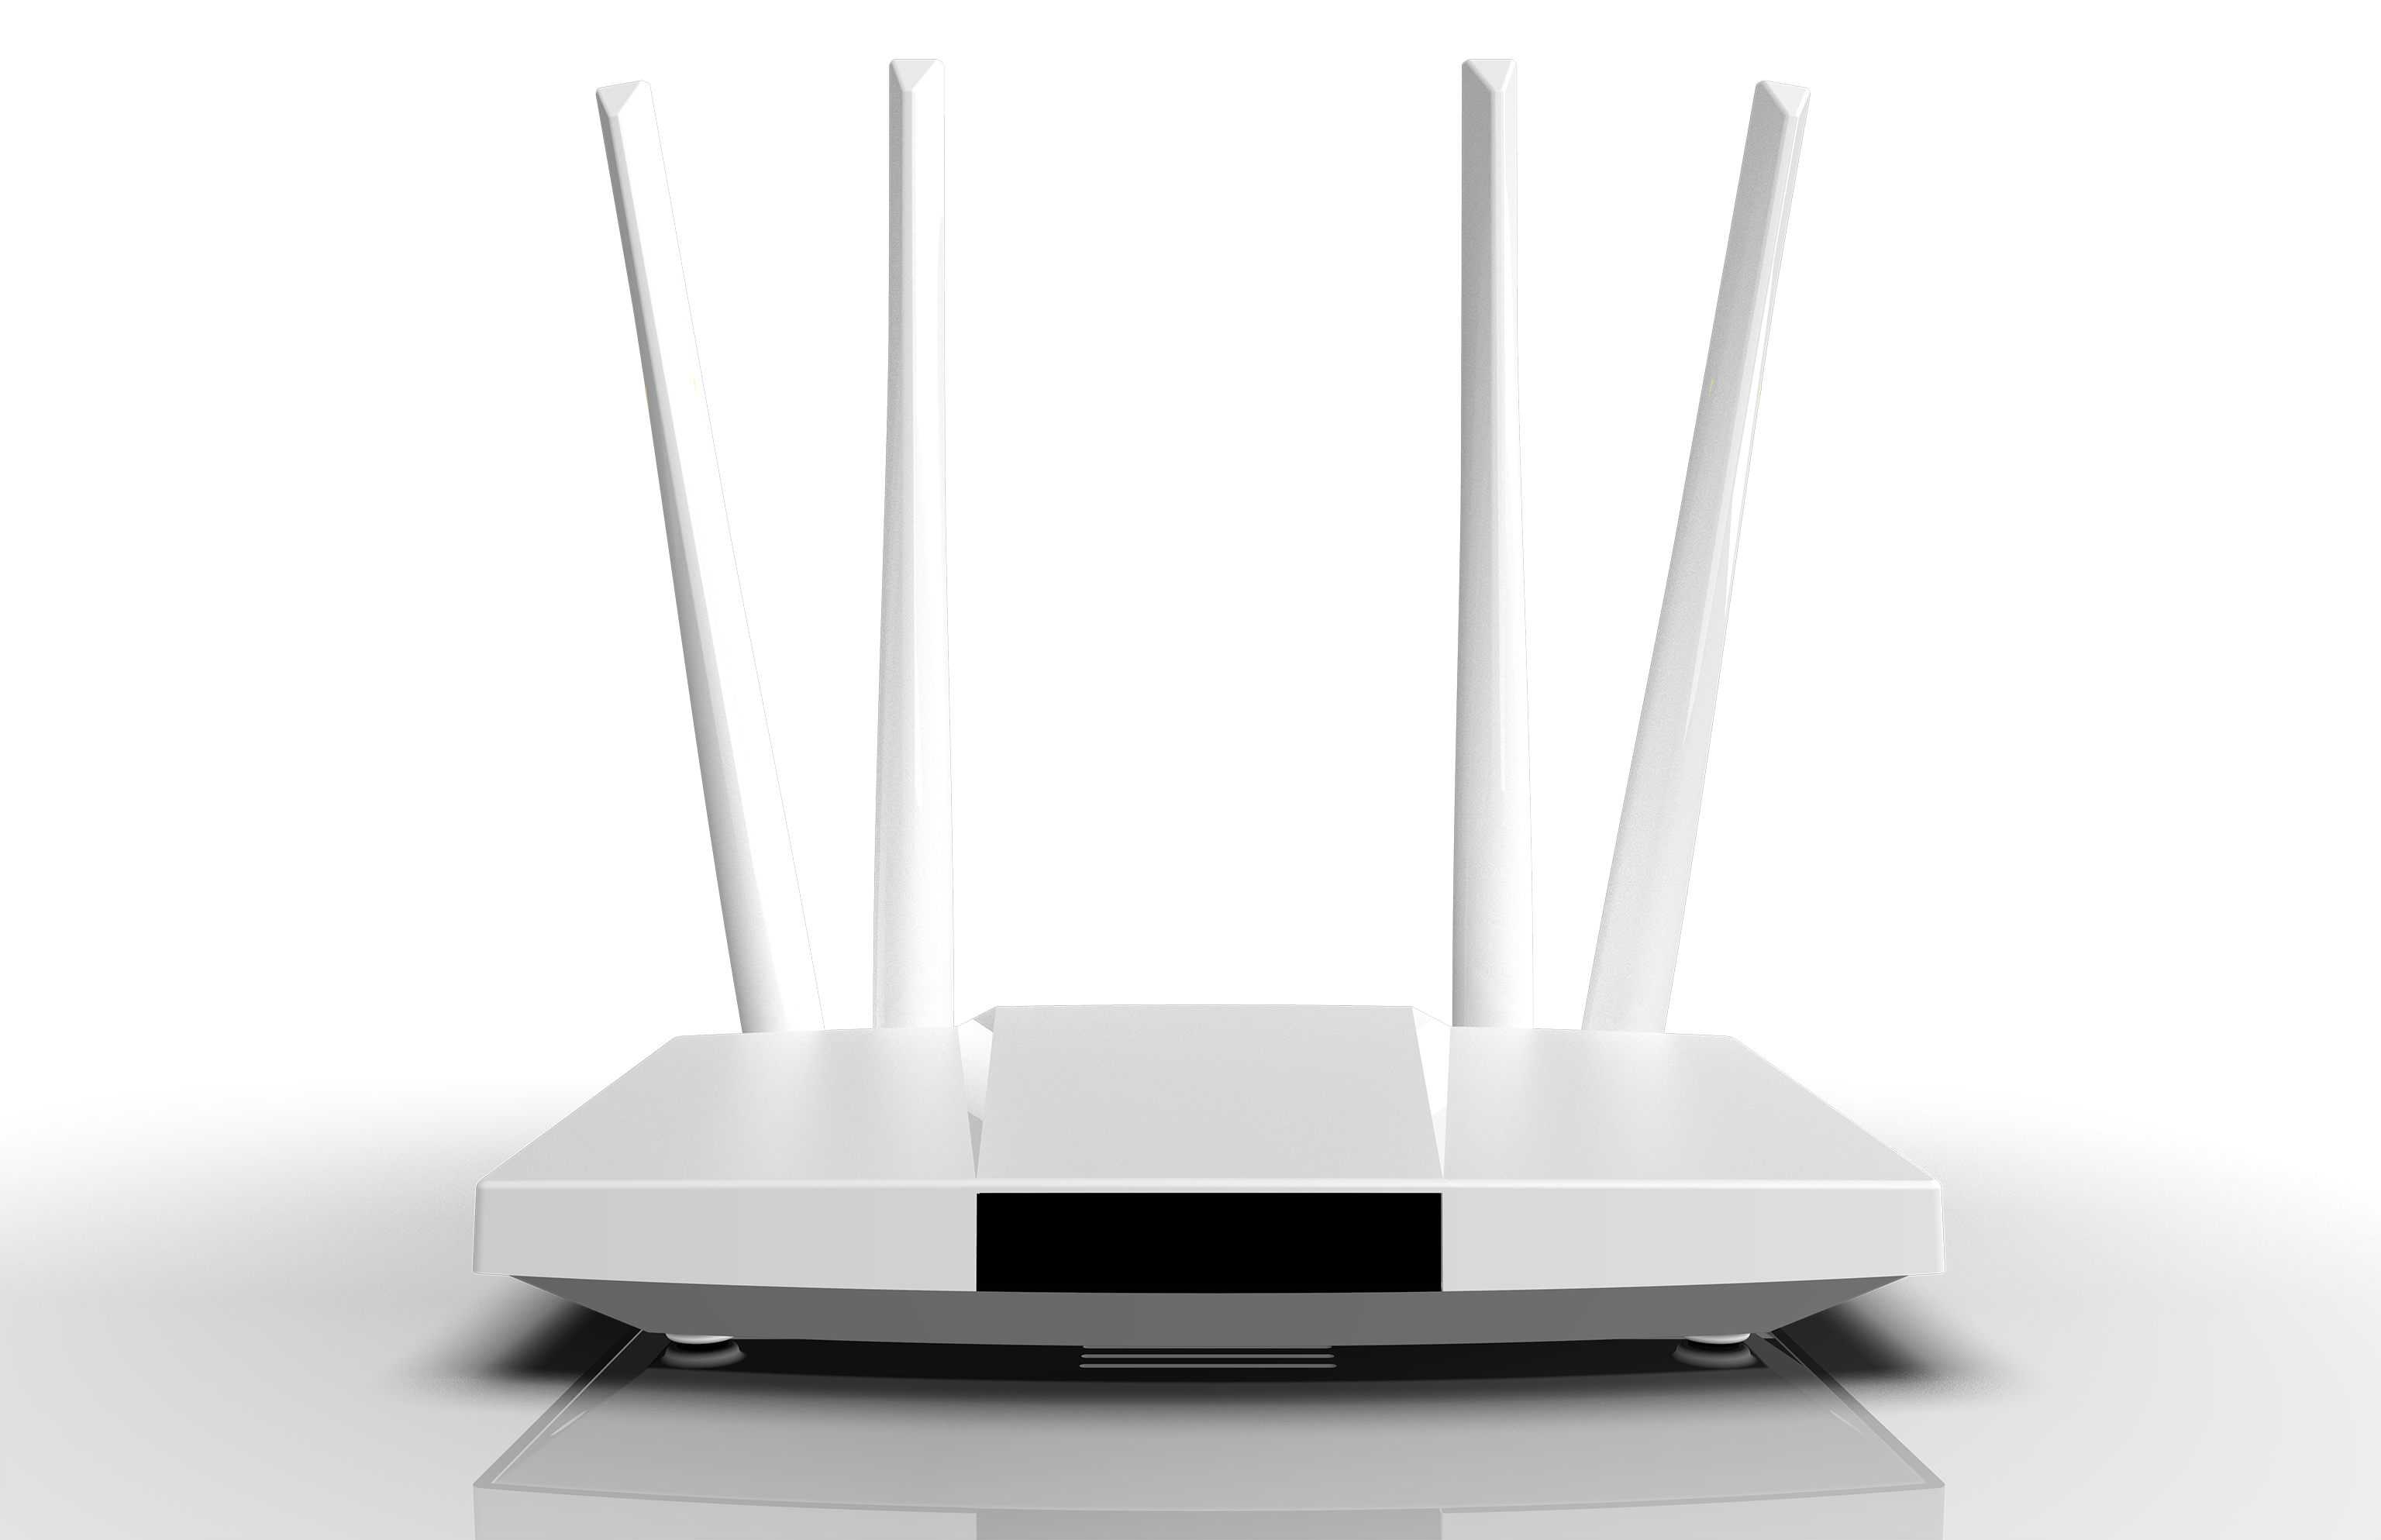 LC112 4G Lte Cpe SIM Card Wifi Router 300m CAT4 32 Wifi Users Router RJ45 WAN LAN Indoor 4G Wifi Router